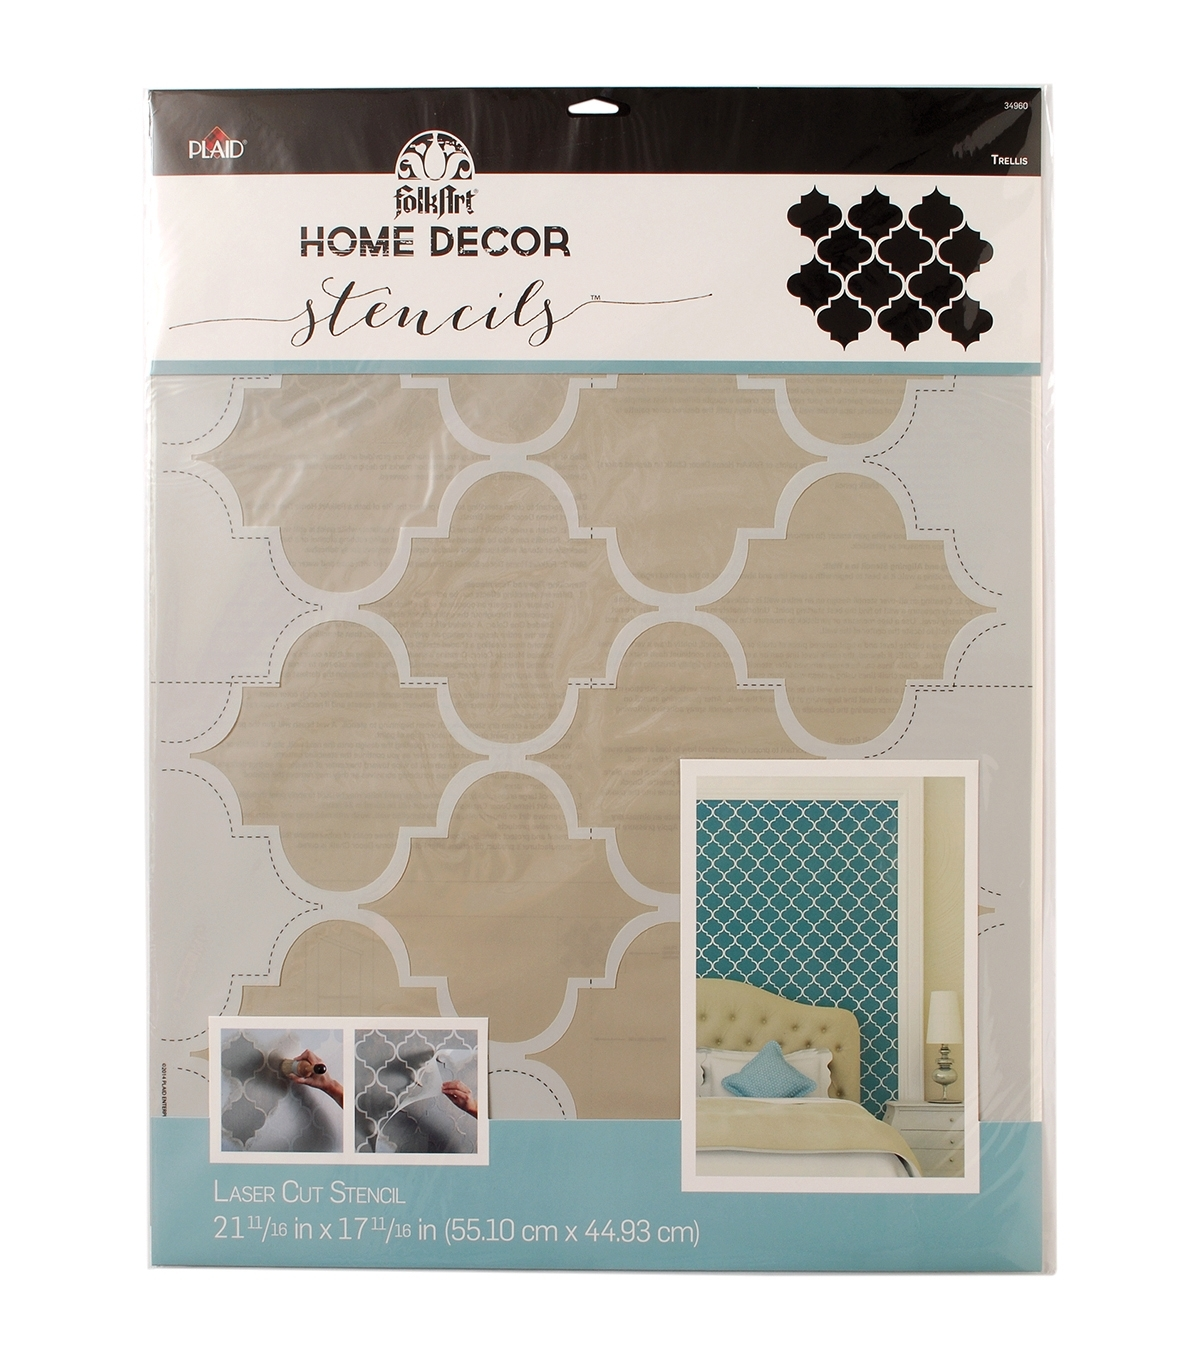 Folkart Home Decor Wall Stencil Trellis | Joann Regarding Newest Joann Fabric Wall Art (Gallery 5 of 15)